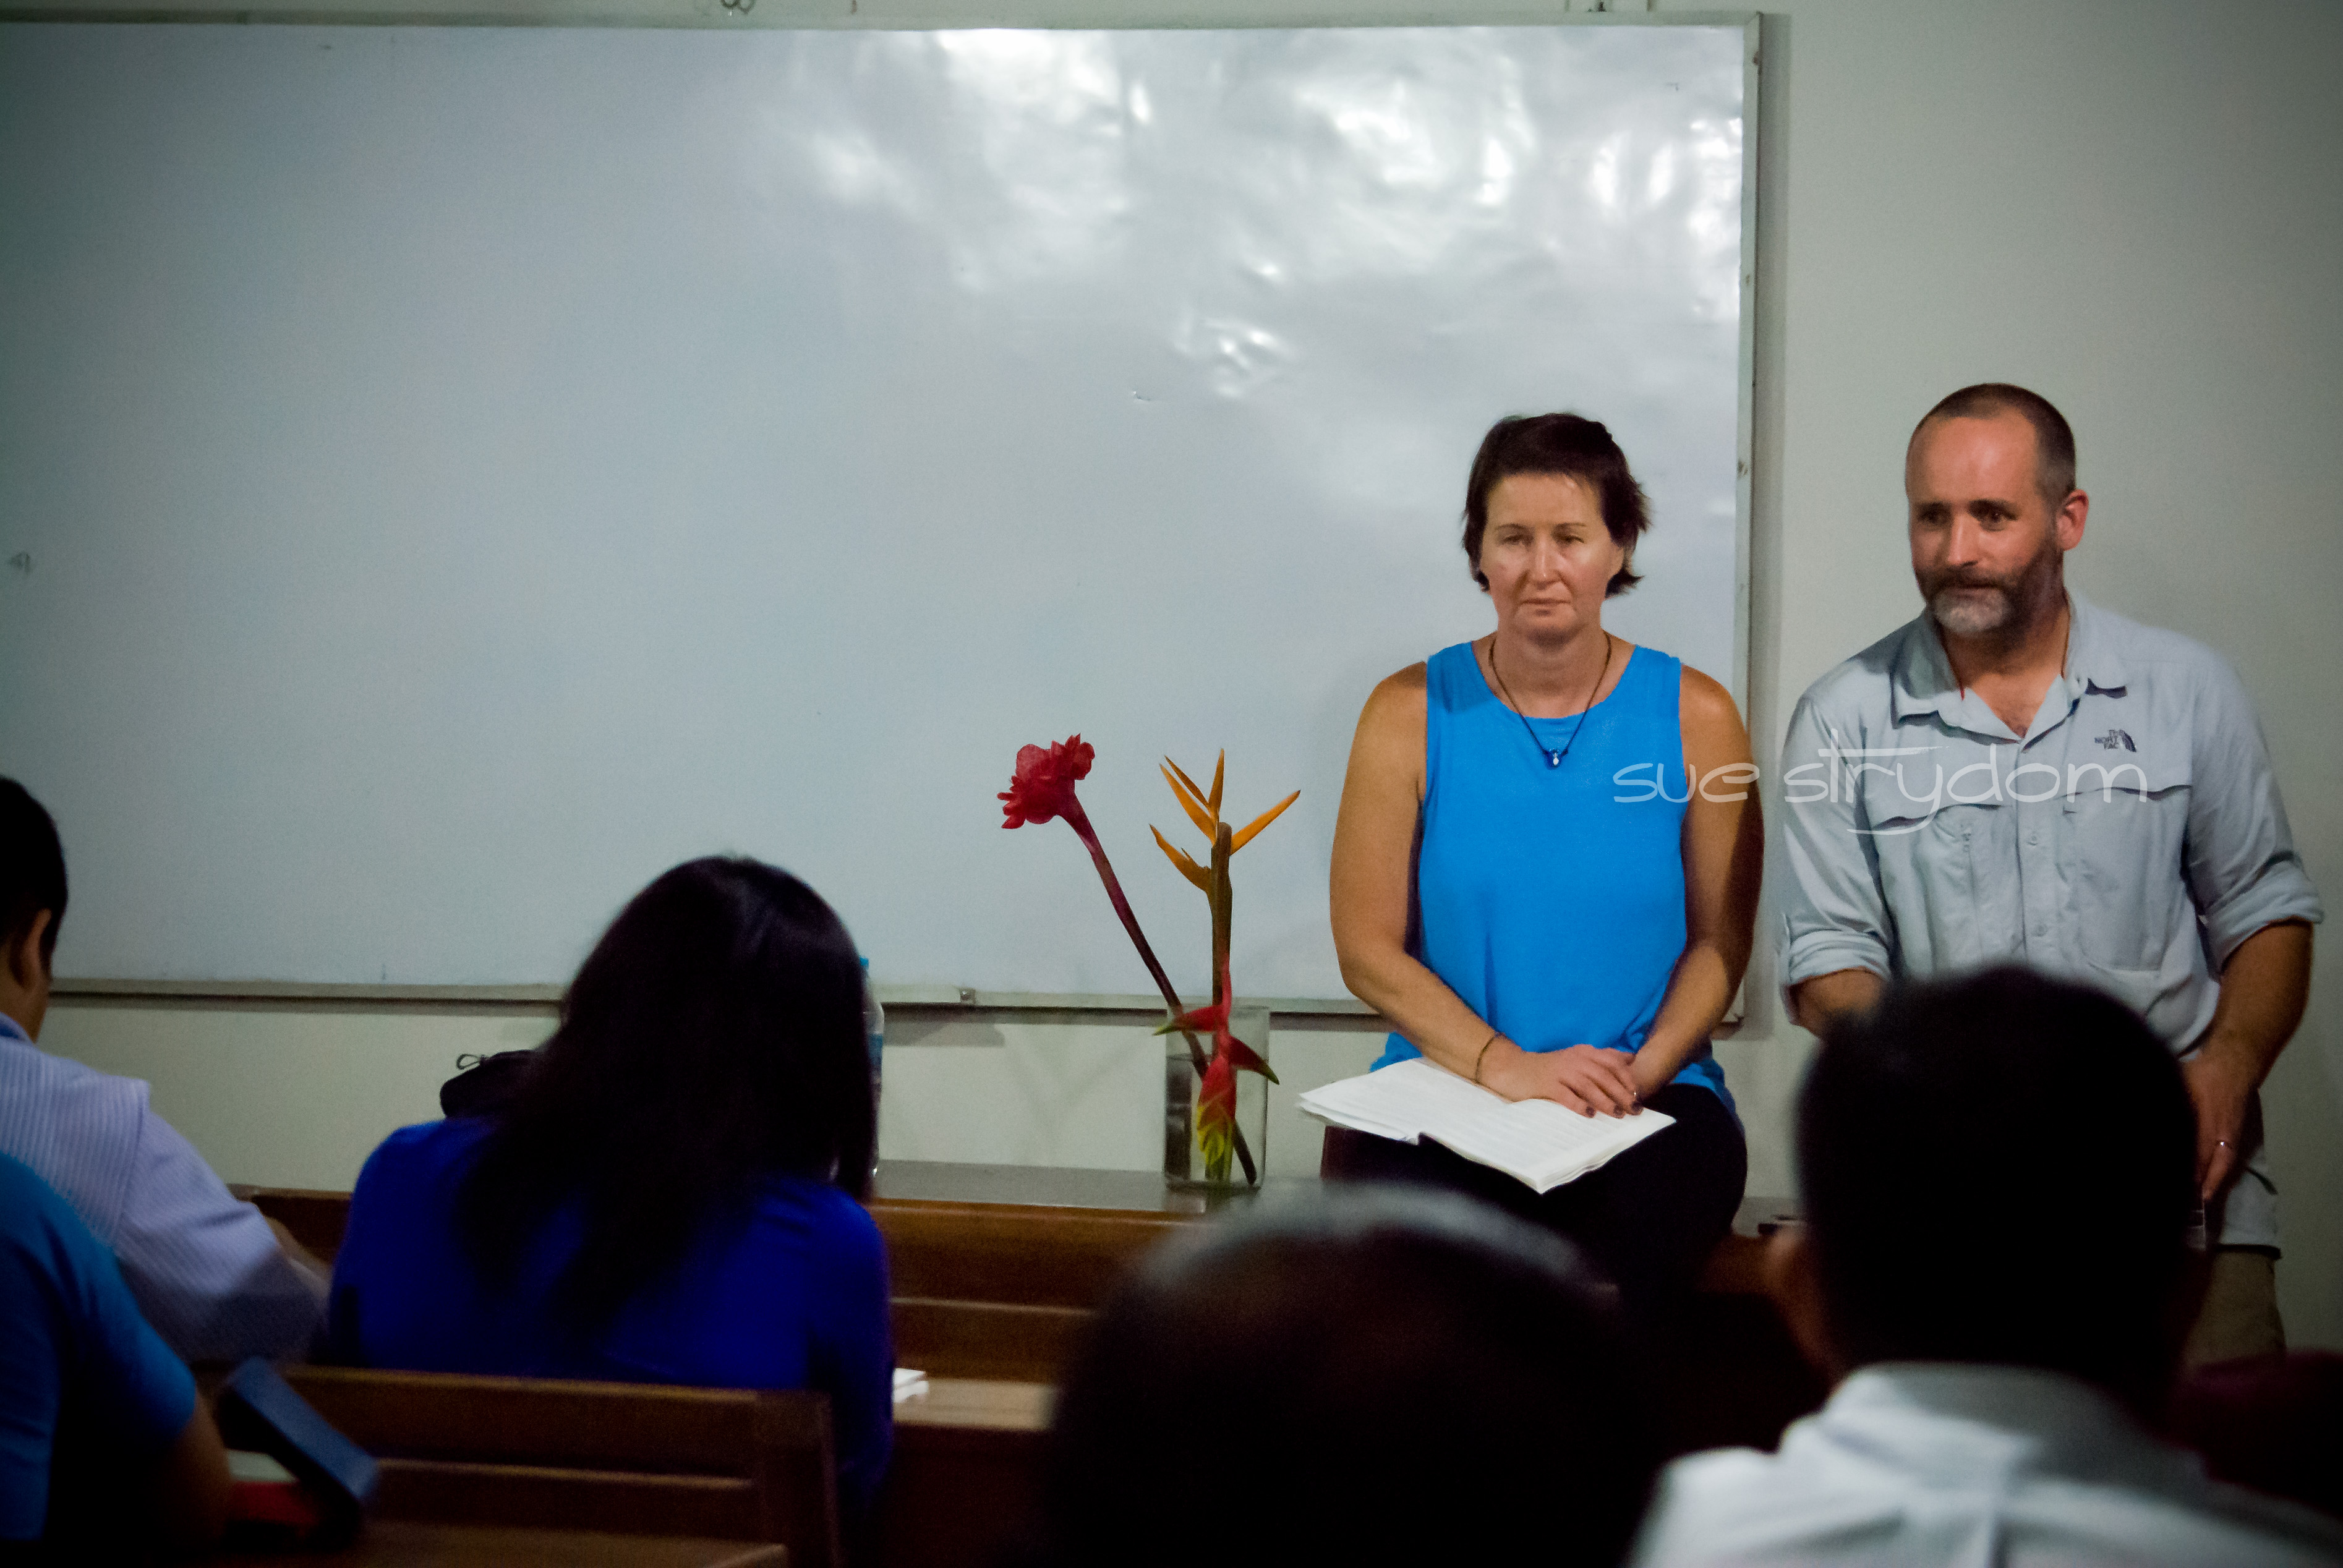 Patrick and Stacey sharing their story at re|engage.